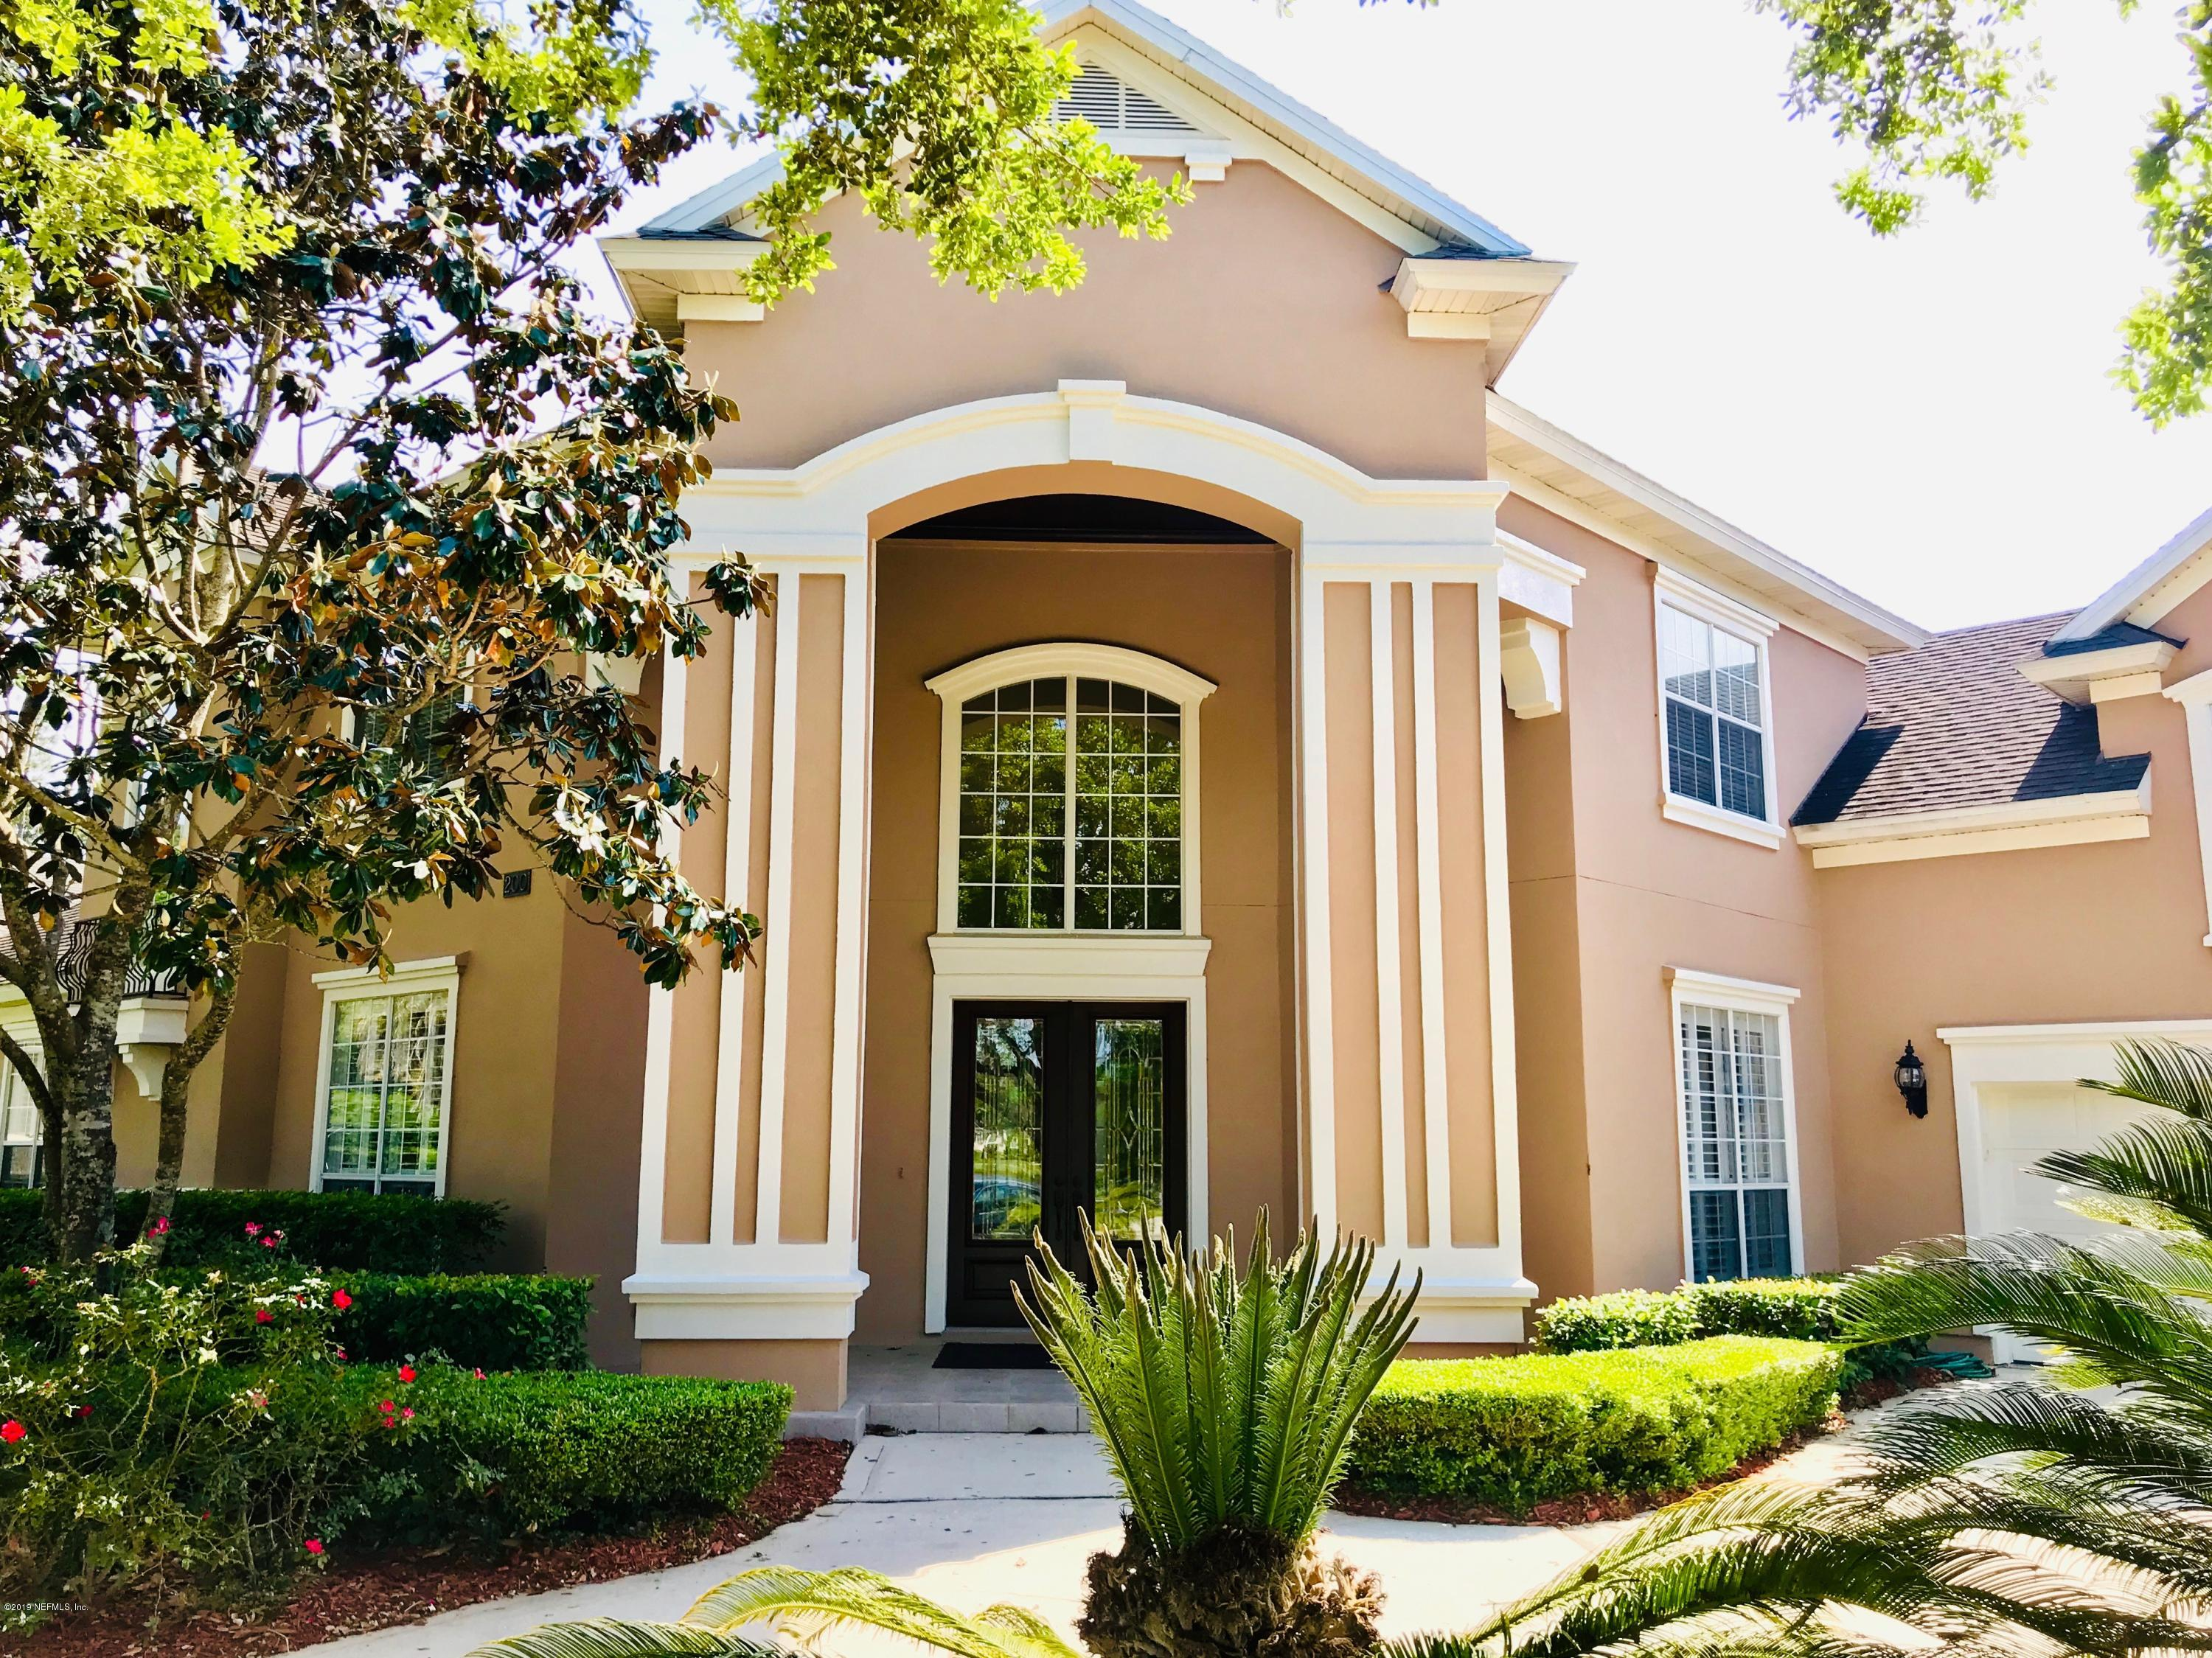 200 CLEARLAKE, PONTE VEDRA BEACH, FLORIDA 32082, 5 Bedrooms Bedrooms, ,4 BathroomsBathrooms,Residential - single family,For sale,CLEARLAKE,991681